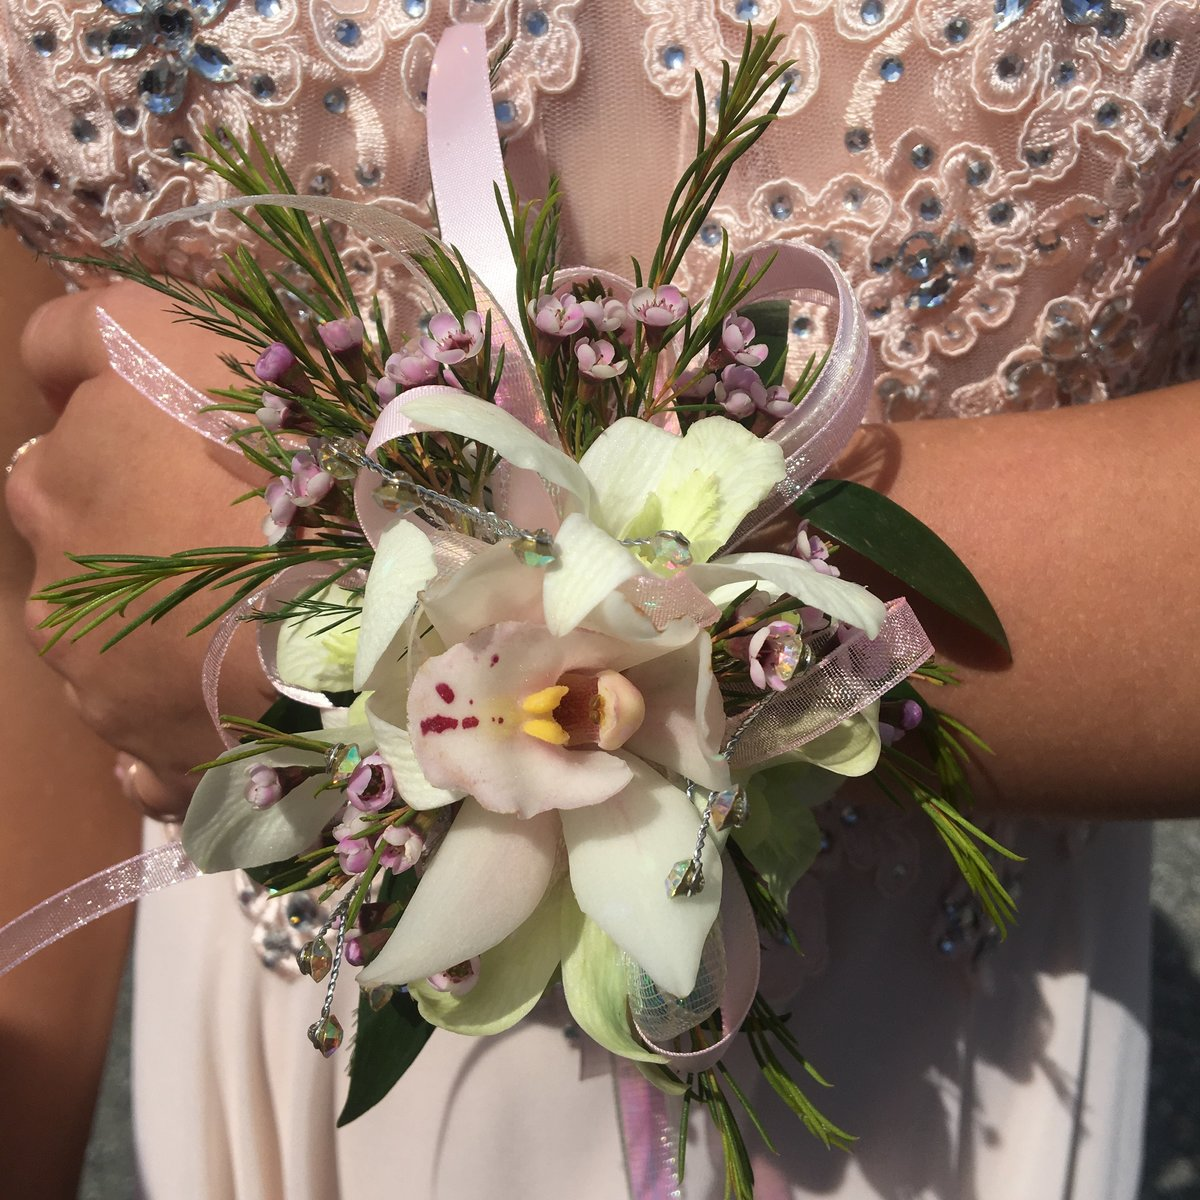 White and pink cymbidum wrist corsage